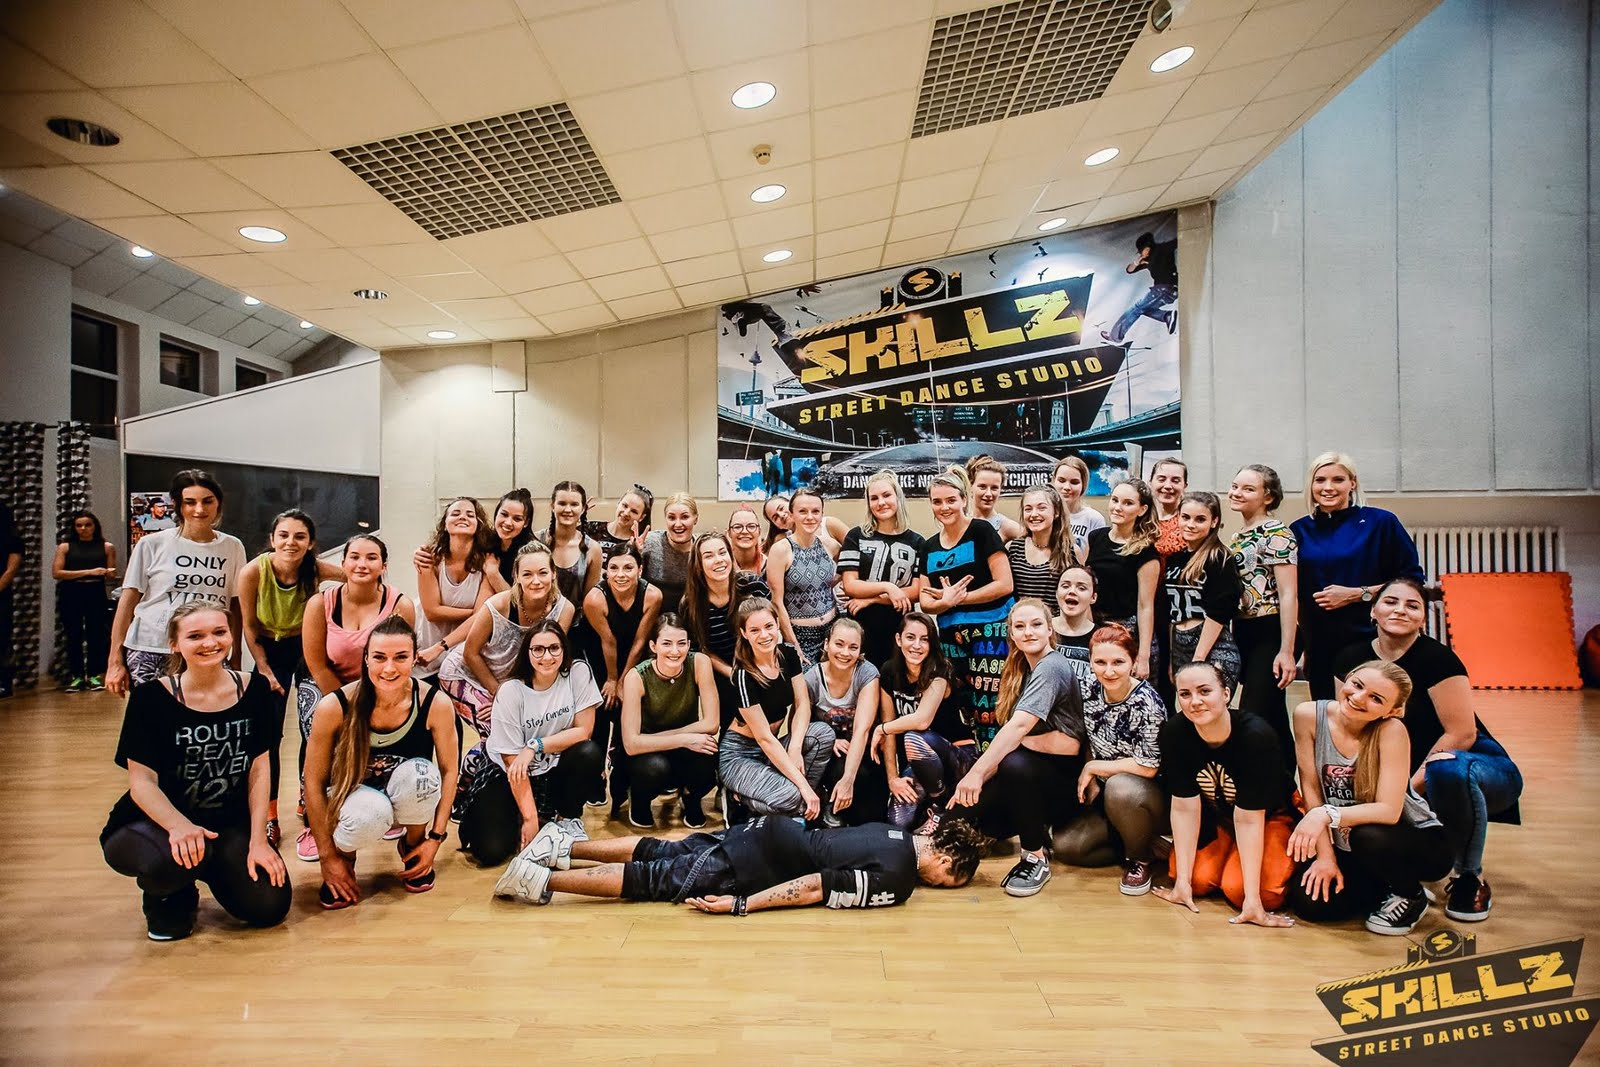 Dancehall workshop with Jiggy (France) - 52.jpg